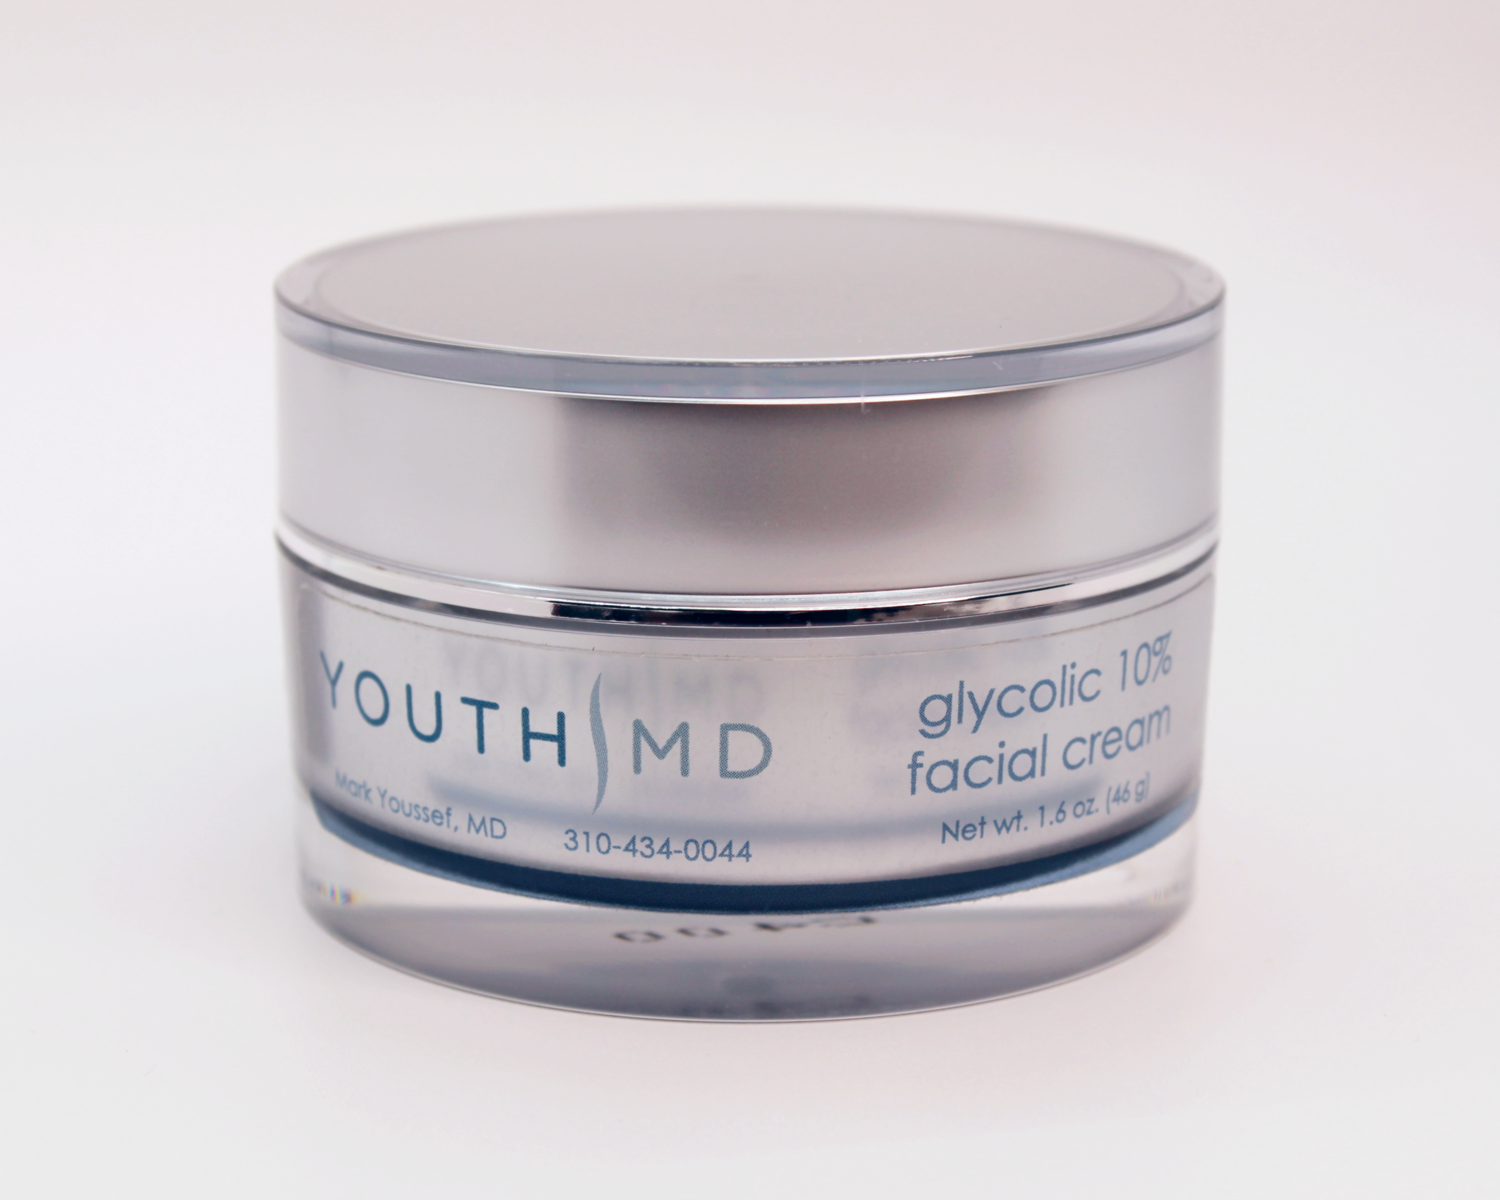 Youth MD | Glycolic Pads 15%